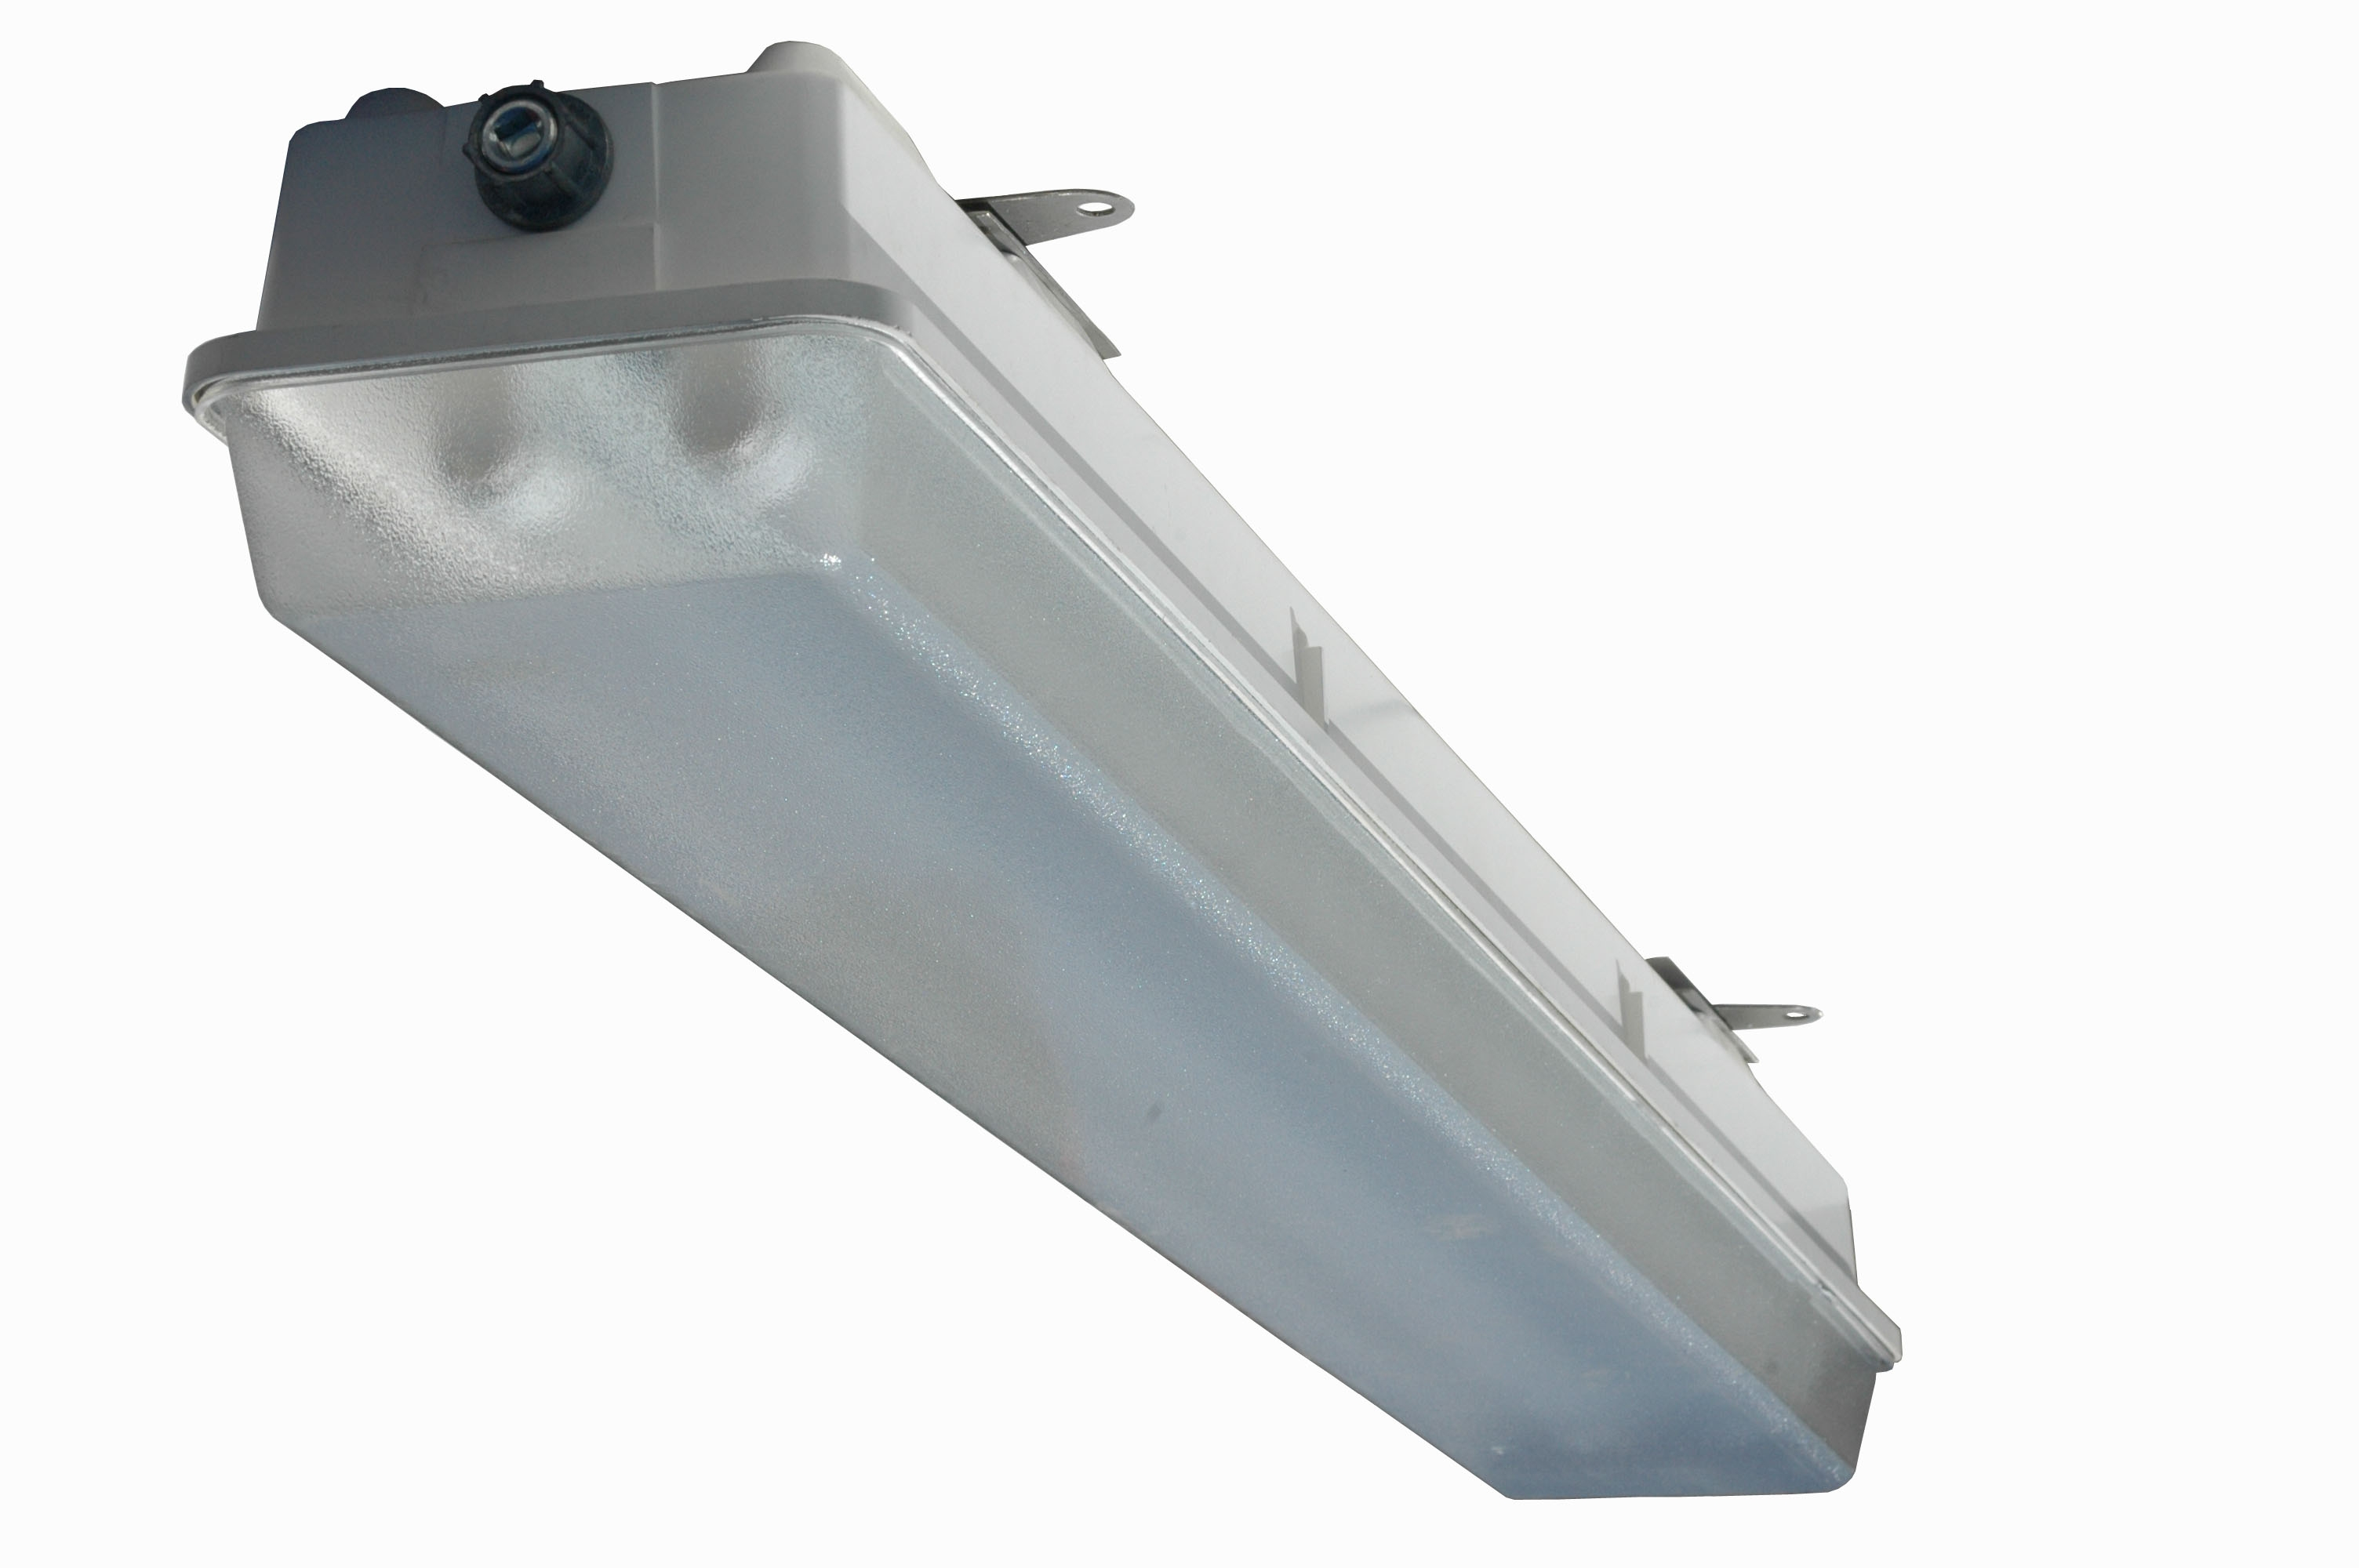 Larson electronics releases high output led fixture for hazardous location lighting